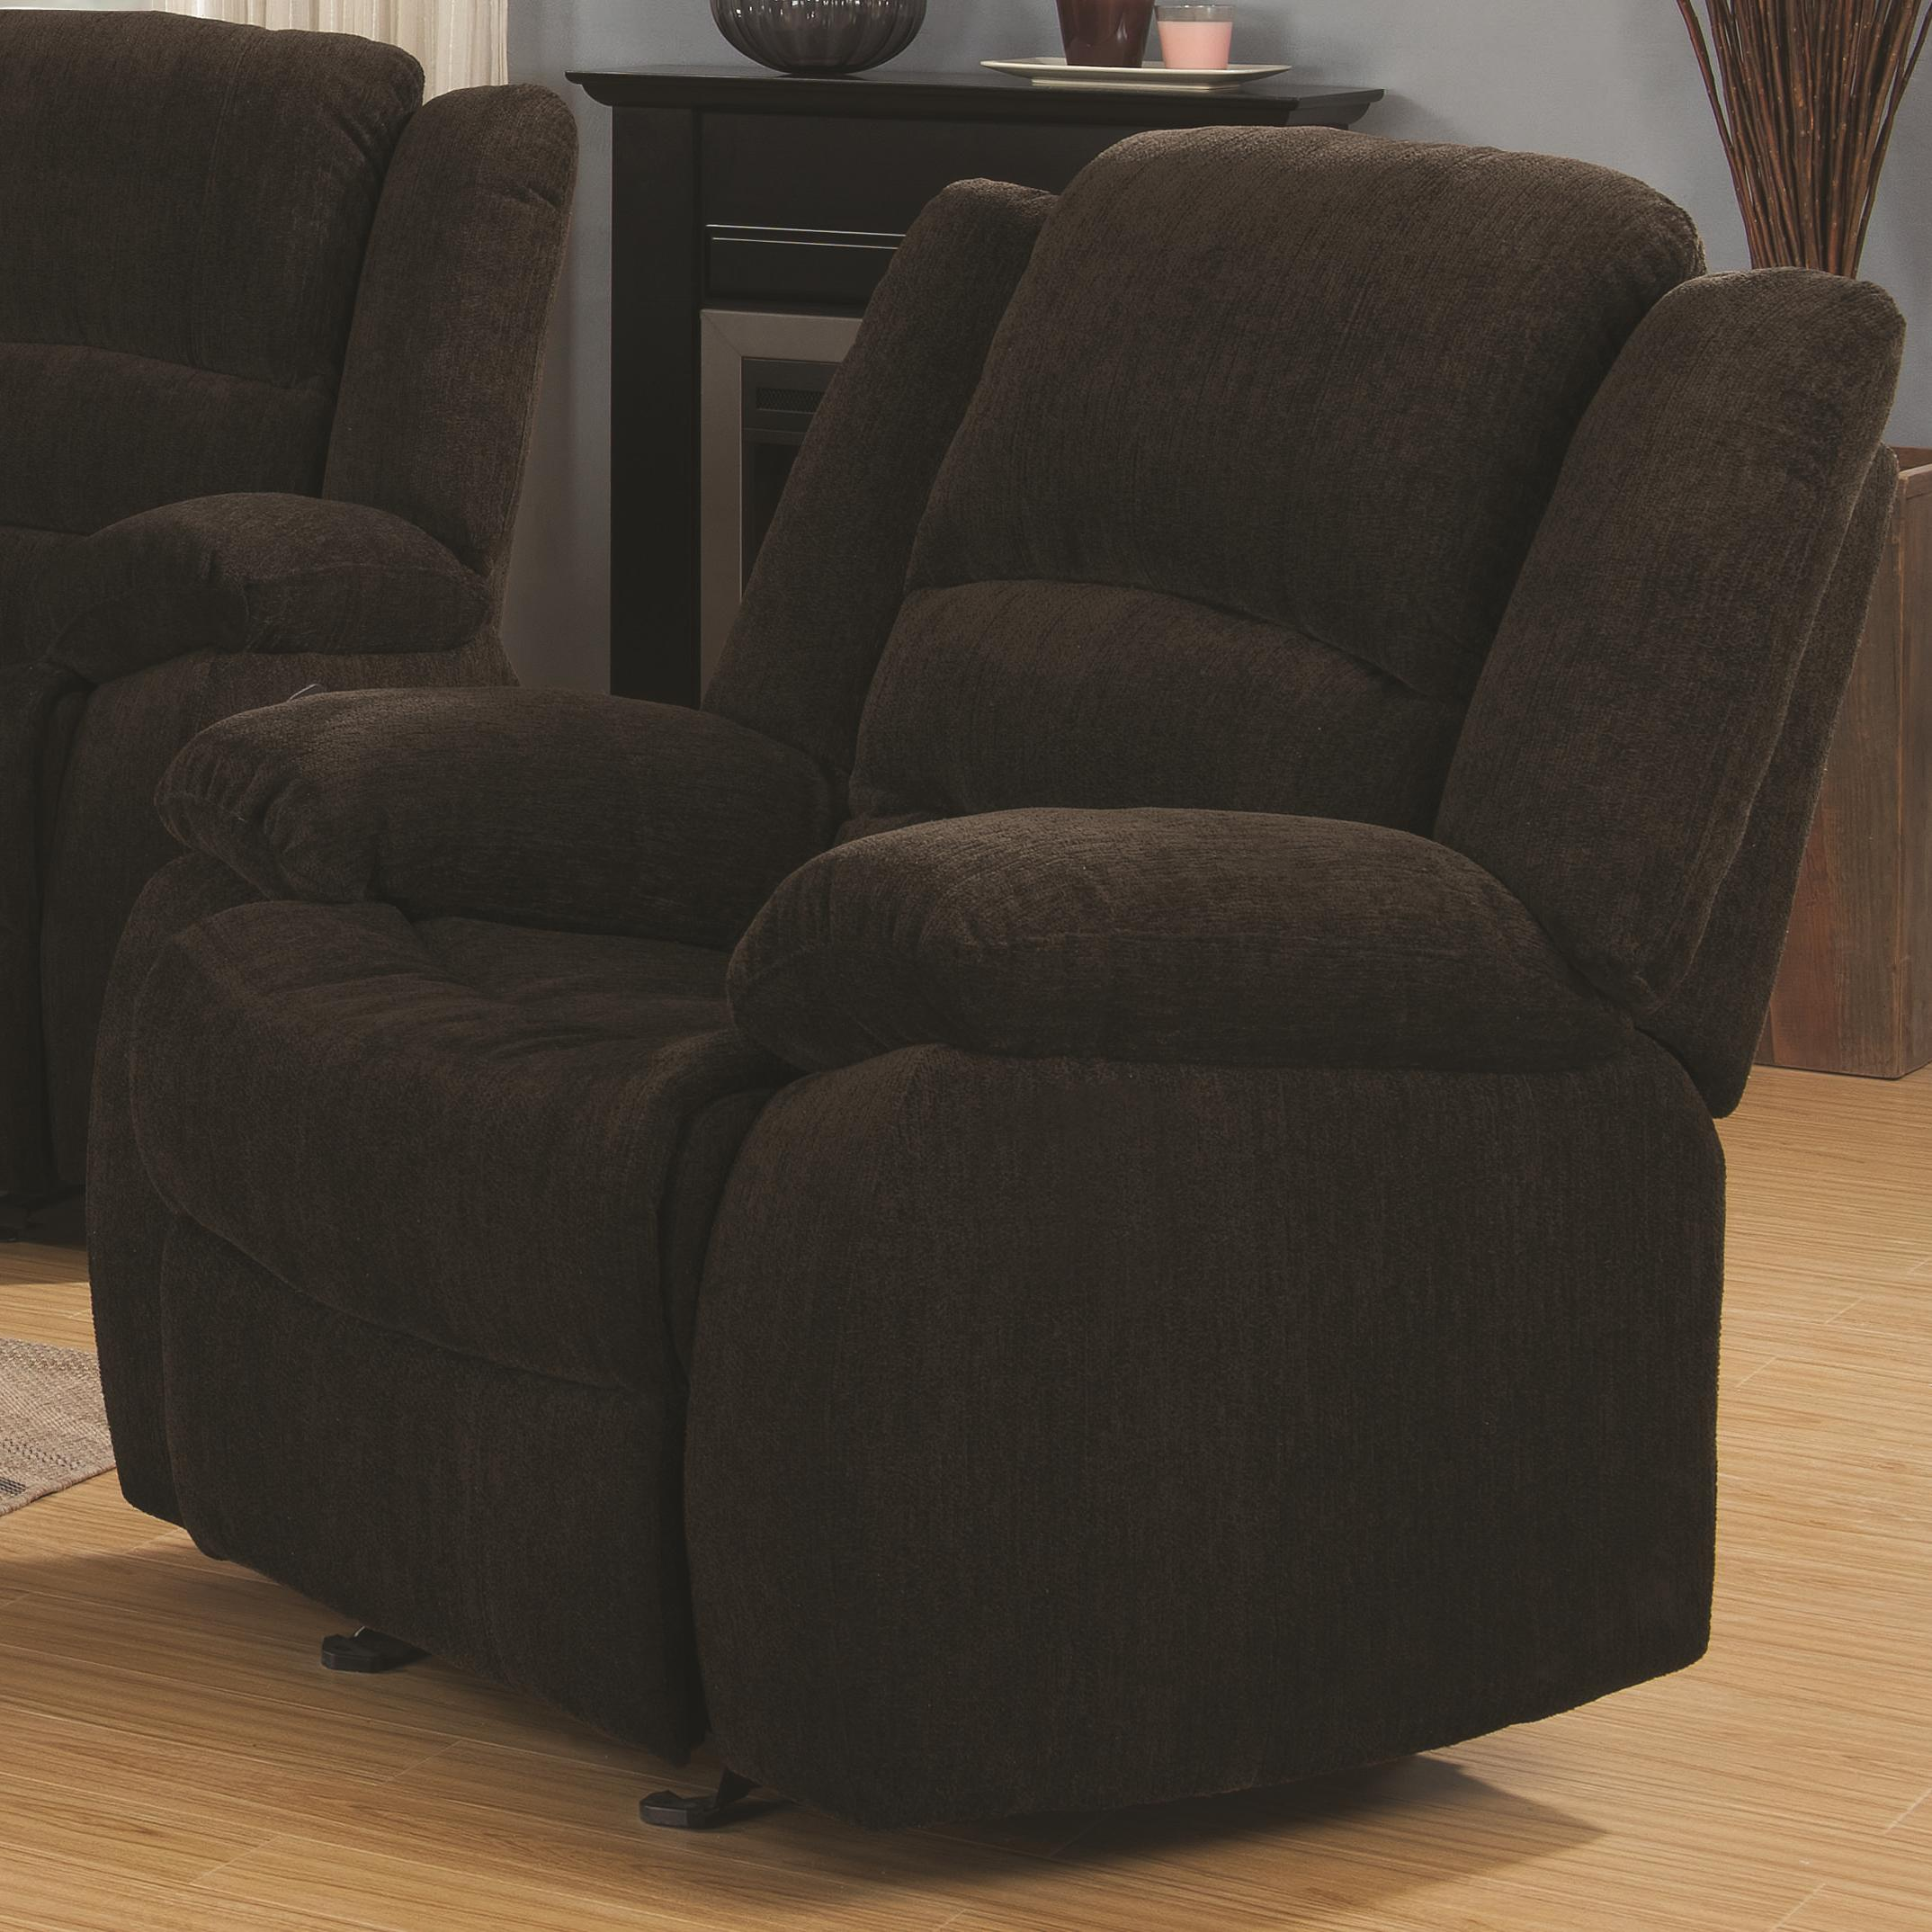 Gordon Glider Recliner by Coaster at Northeast Factory Direct